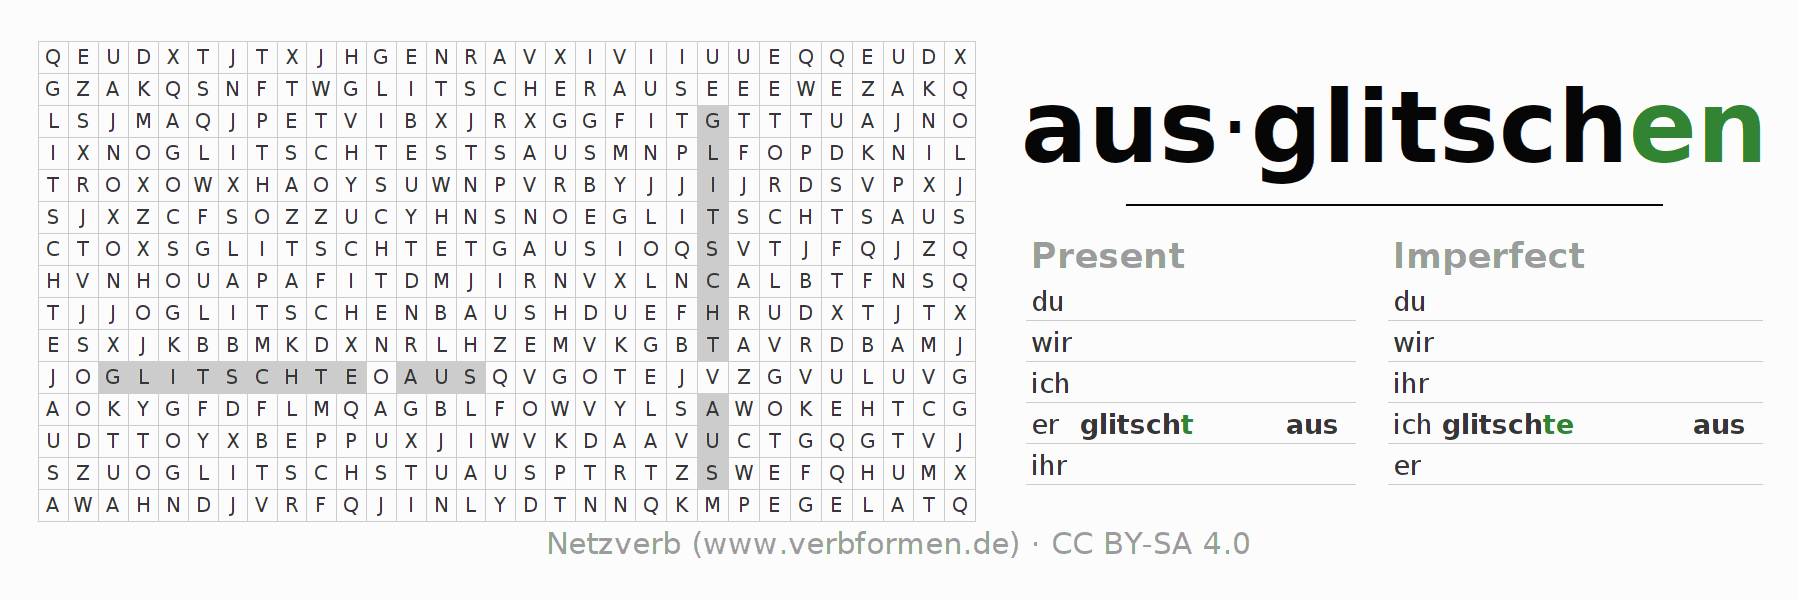 Word search puzzle for the conjugation of the verb ausglitschen